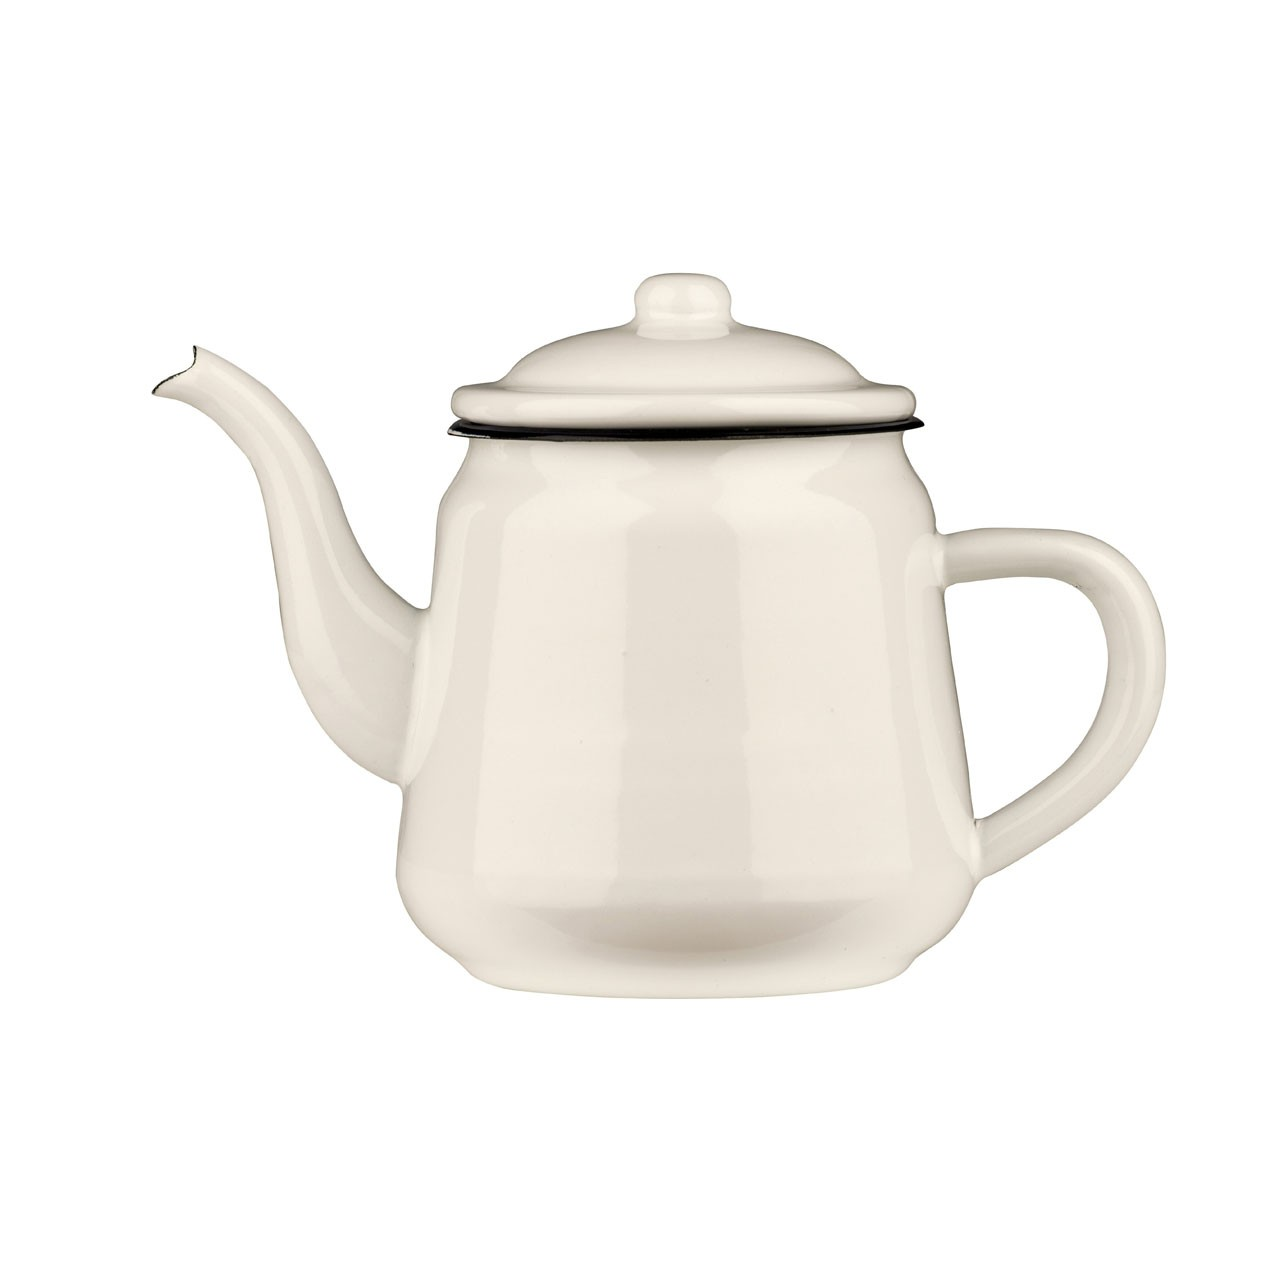 Teapot White Enamel/Dark Blue Rim 2200ml